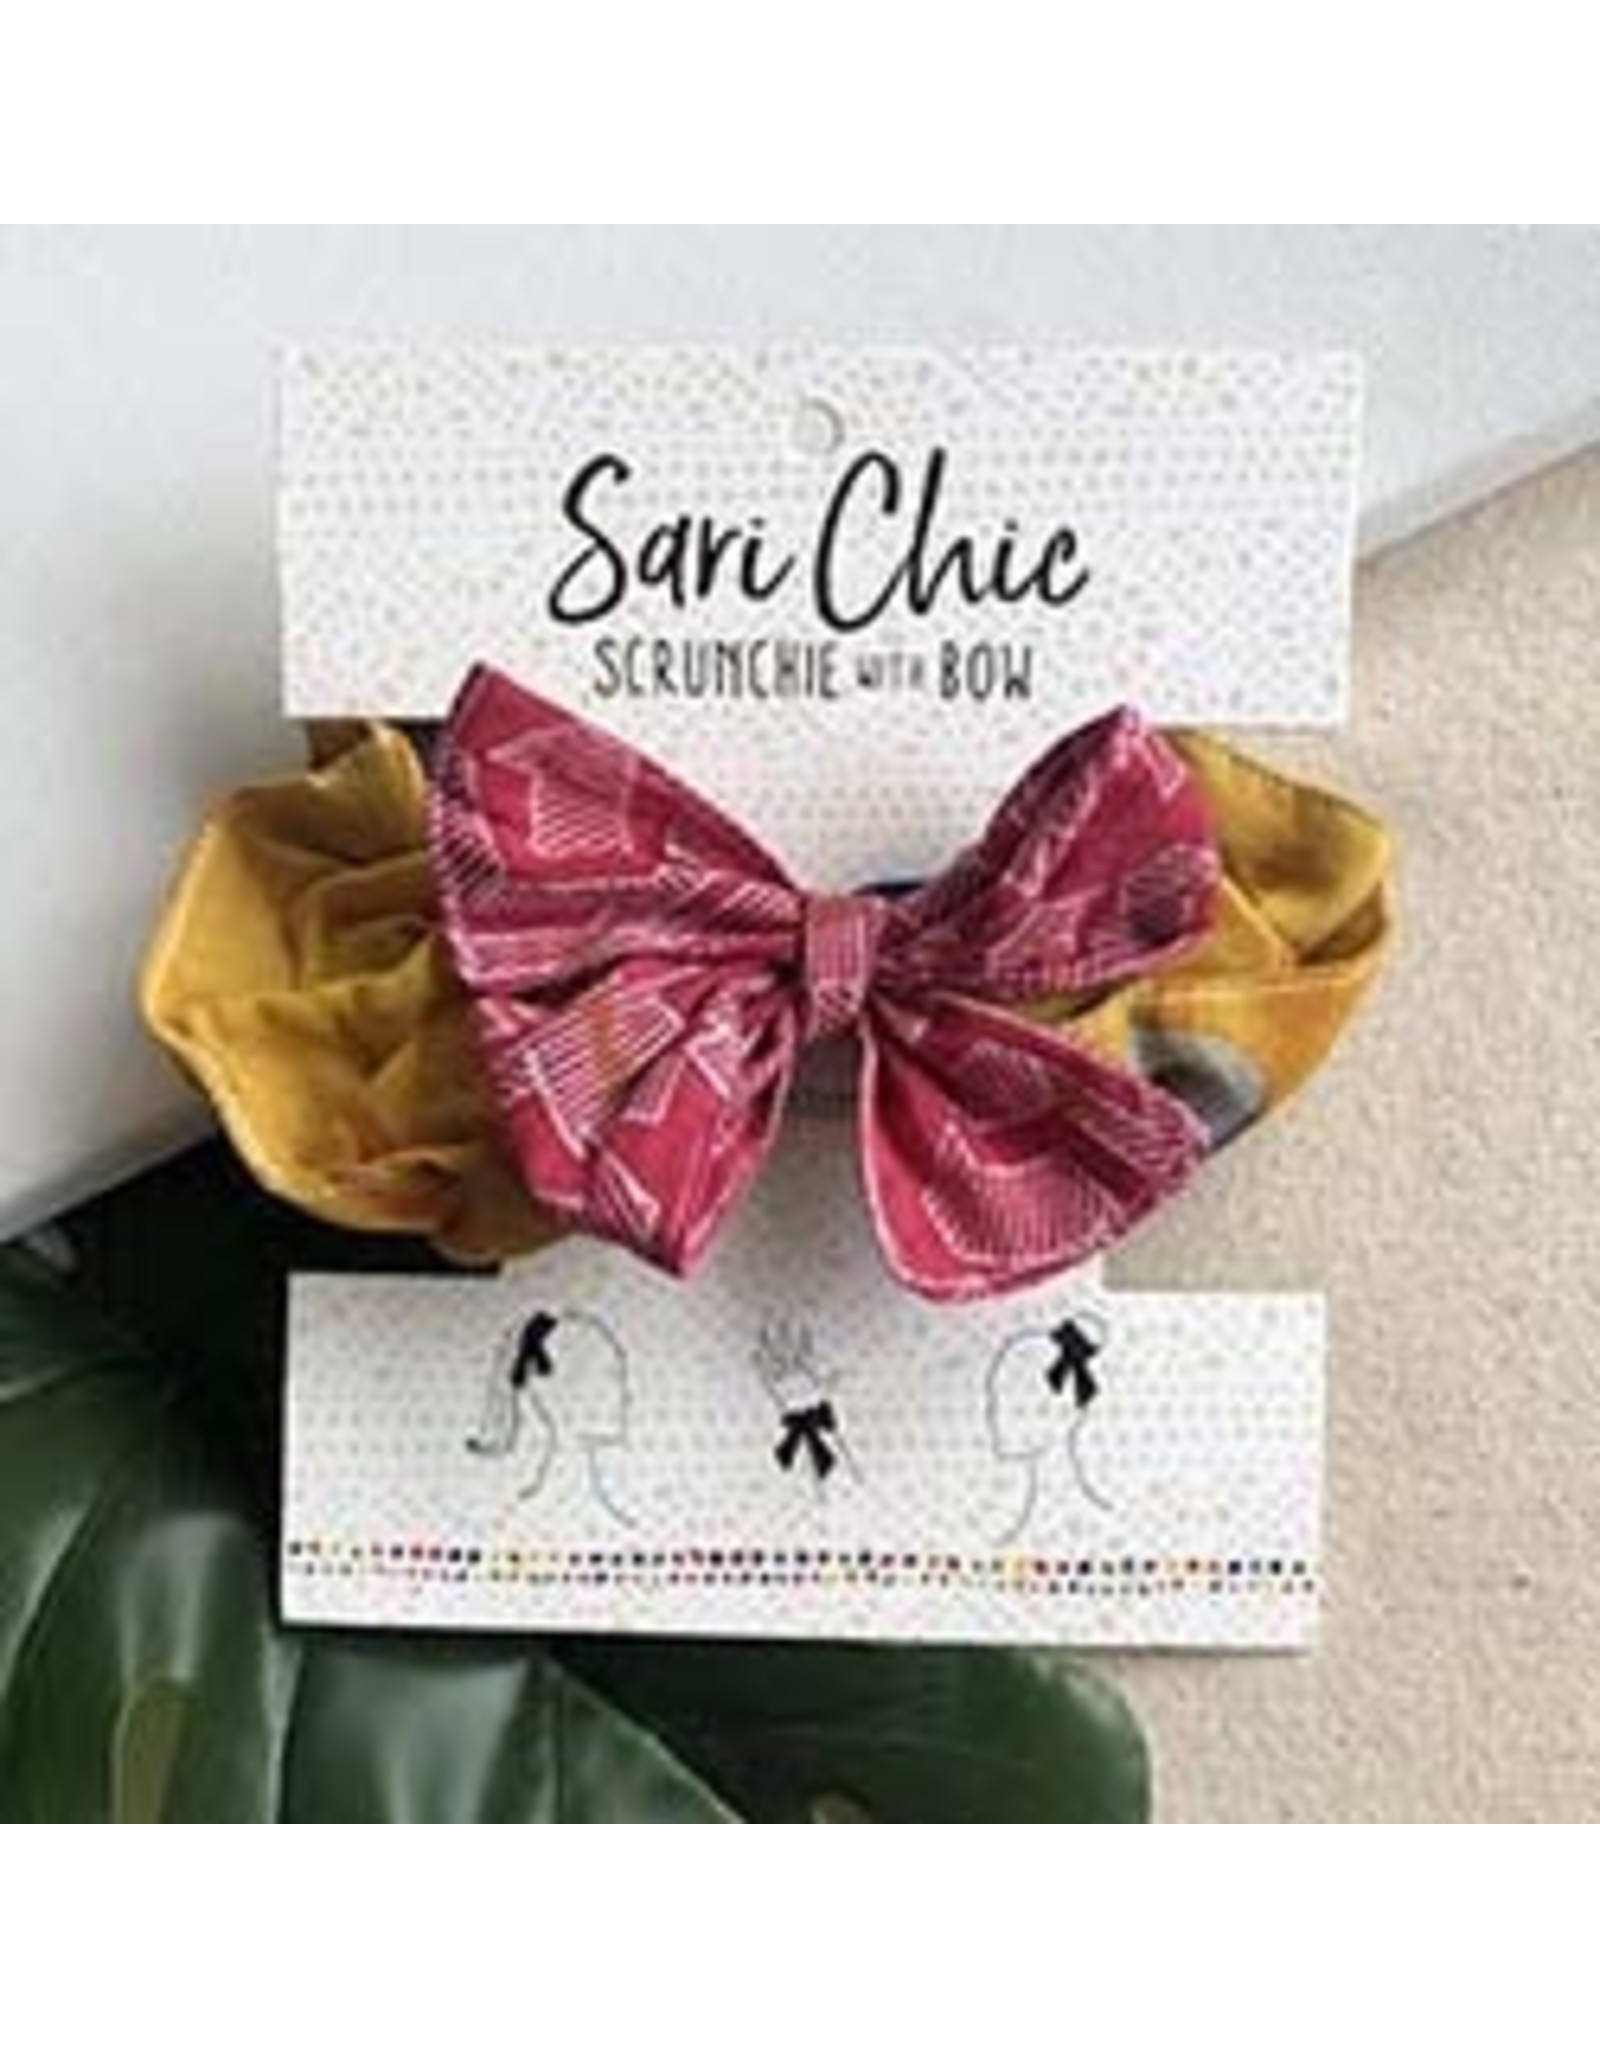 Scrunchie with Bow, India